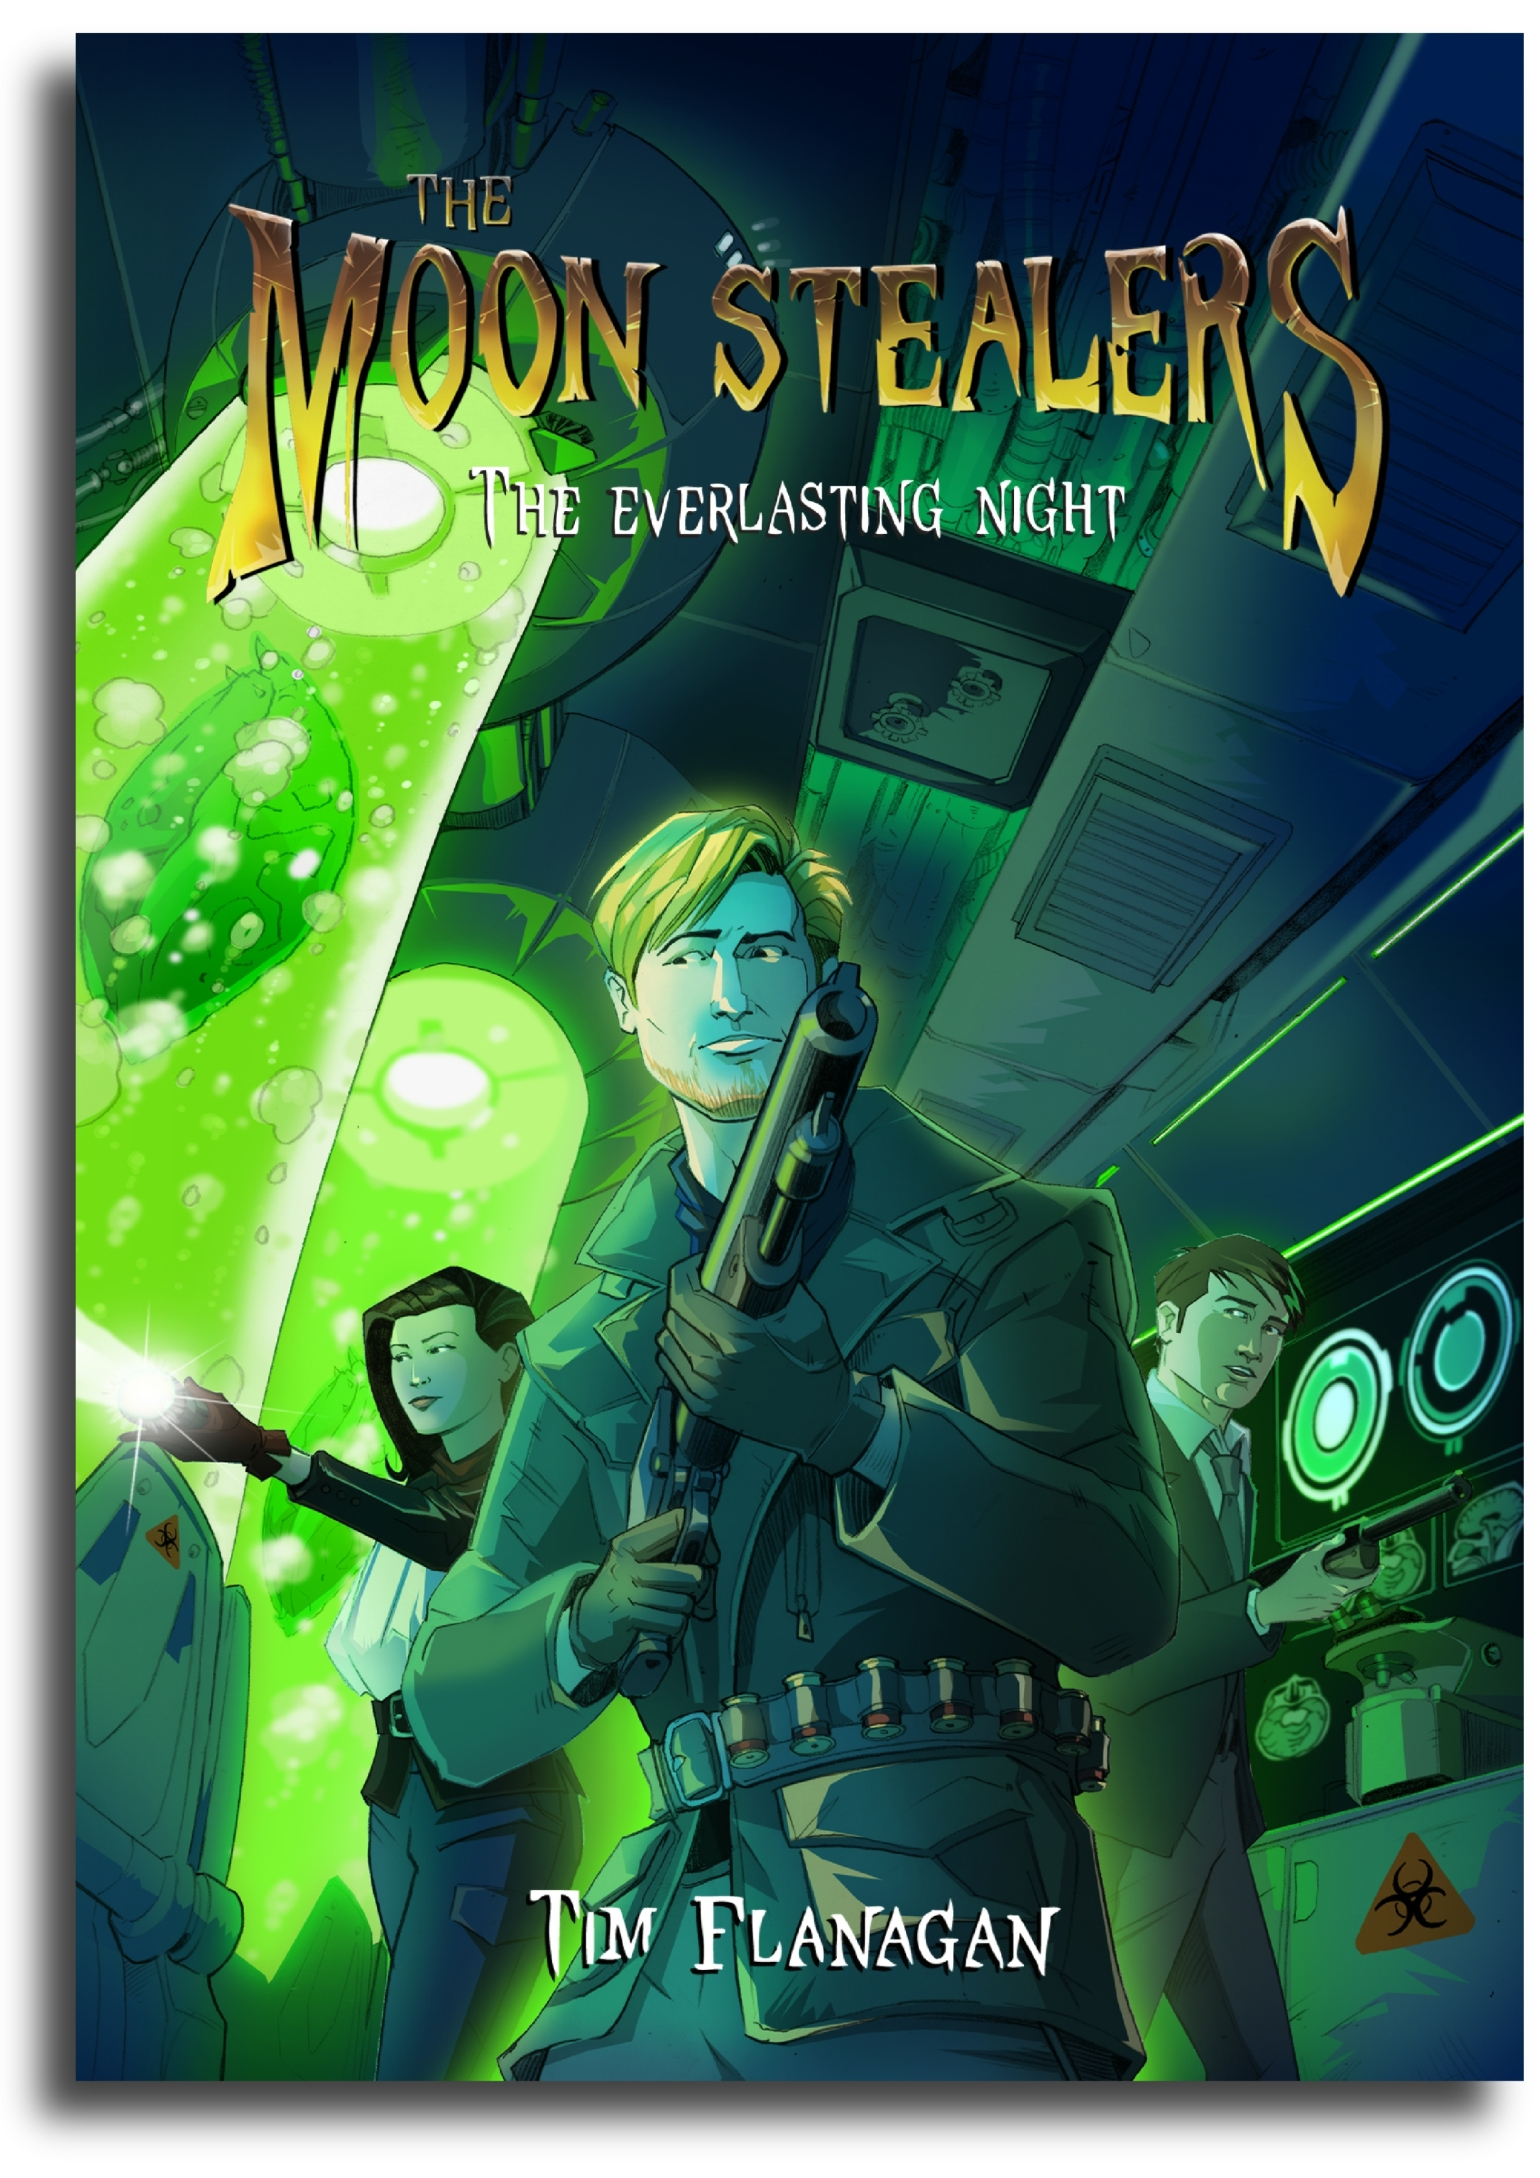 The Everlasting Night (The Moon Stealers Book 3)